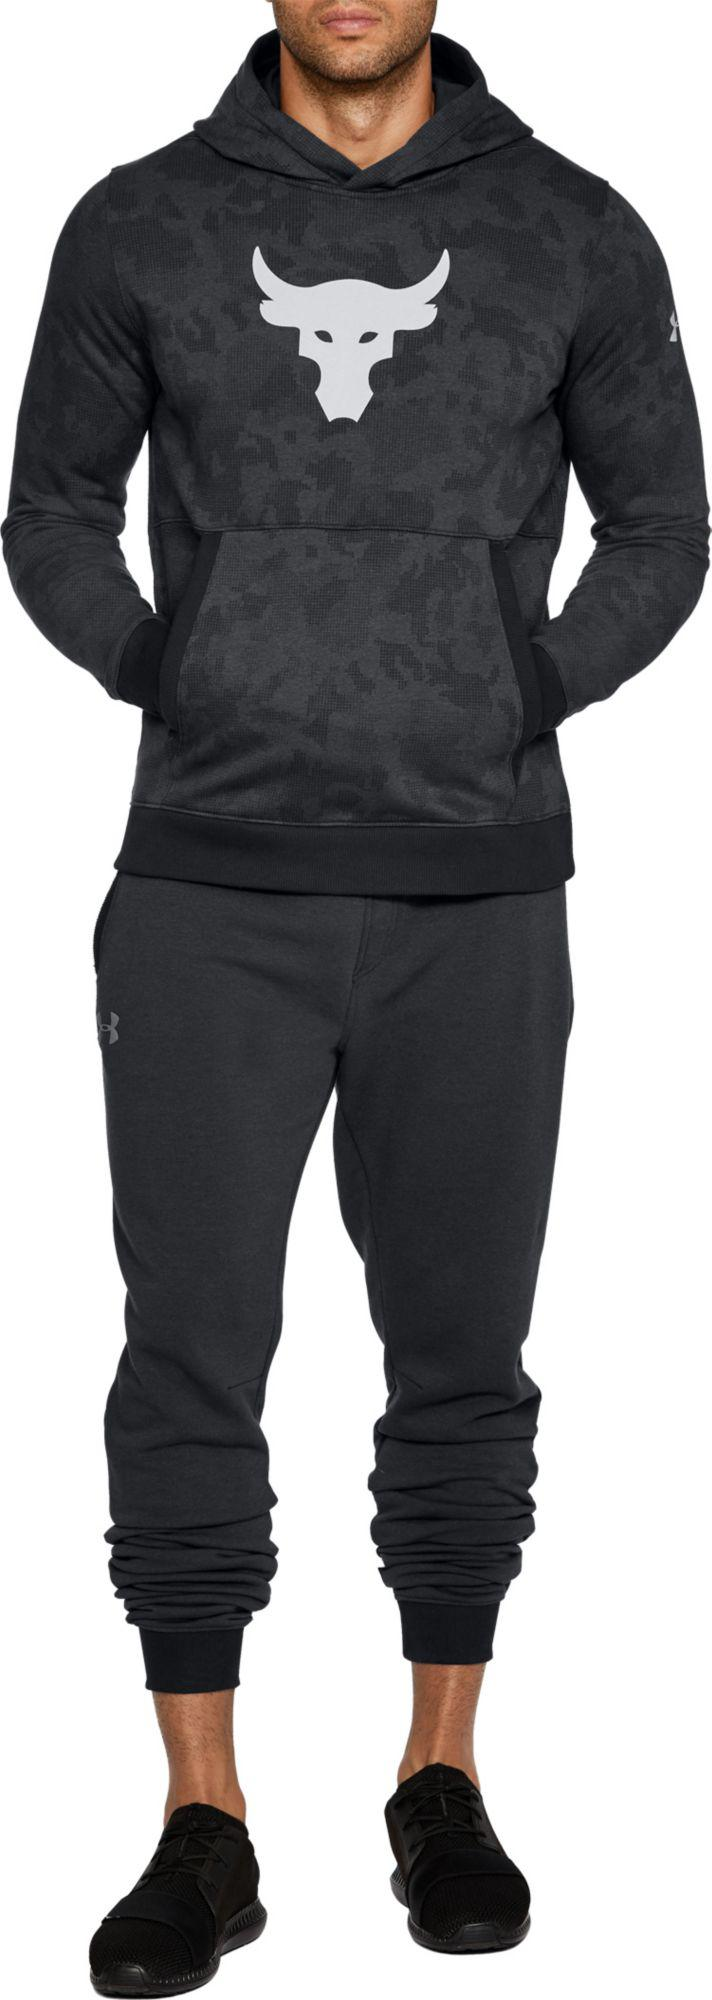 f7ca2ab75 Under Armour Project Rock Threadborne Pullover Hoodie in Black for ...